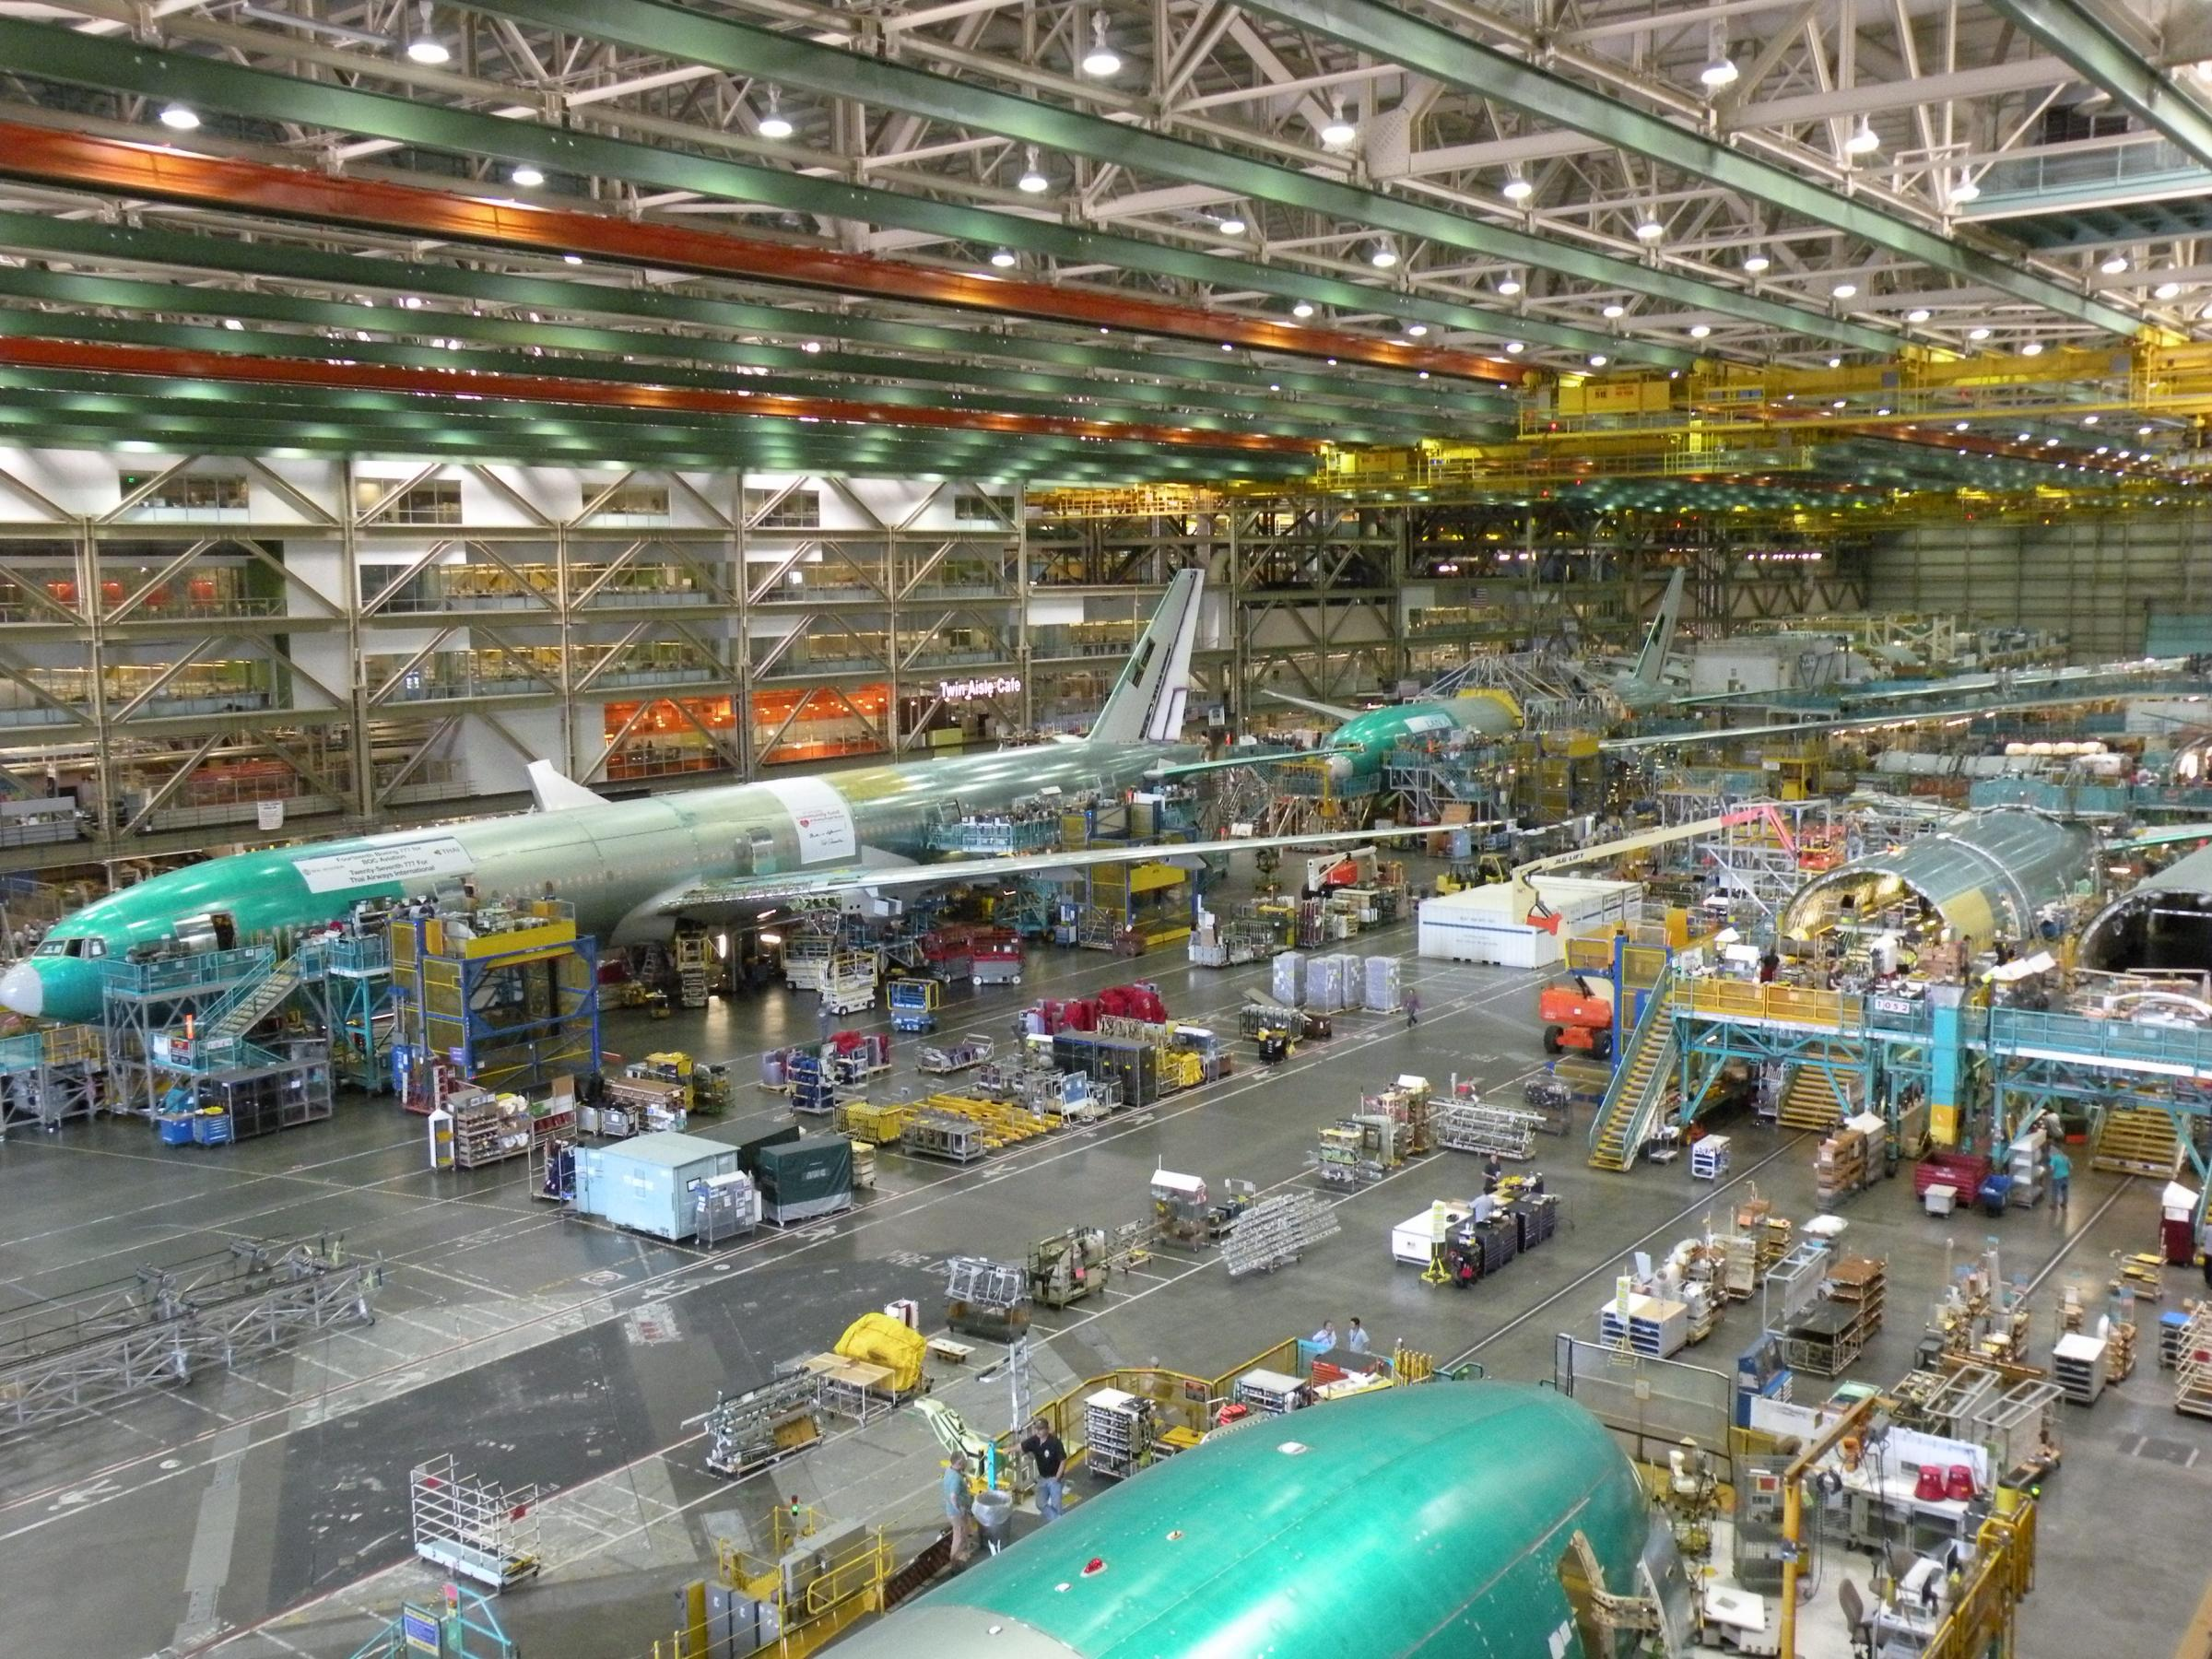 Possible Reasons Boeing Plans 777x Design Outside Of